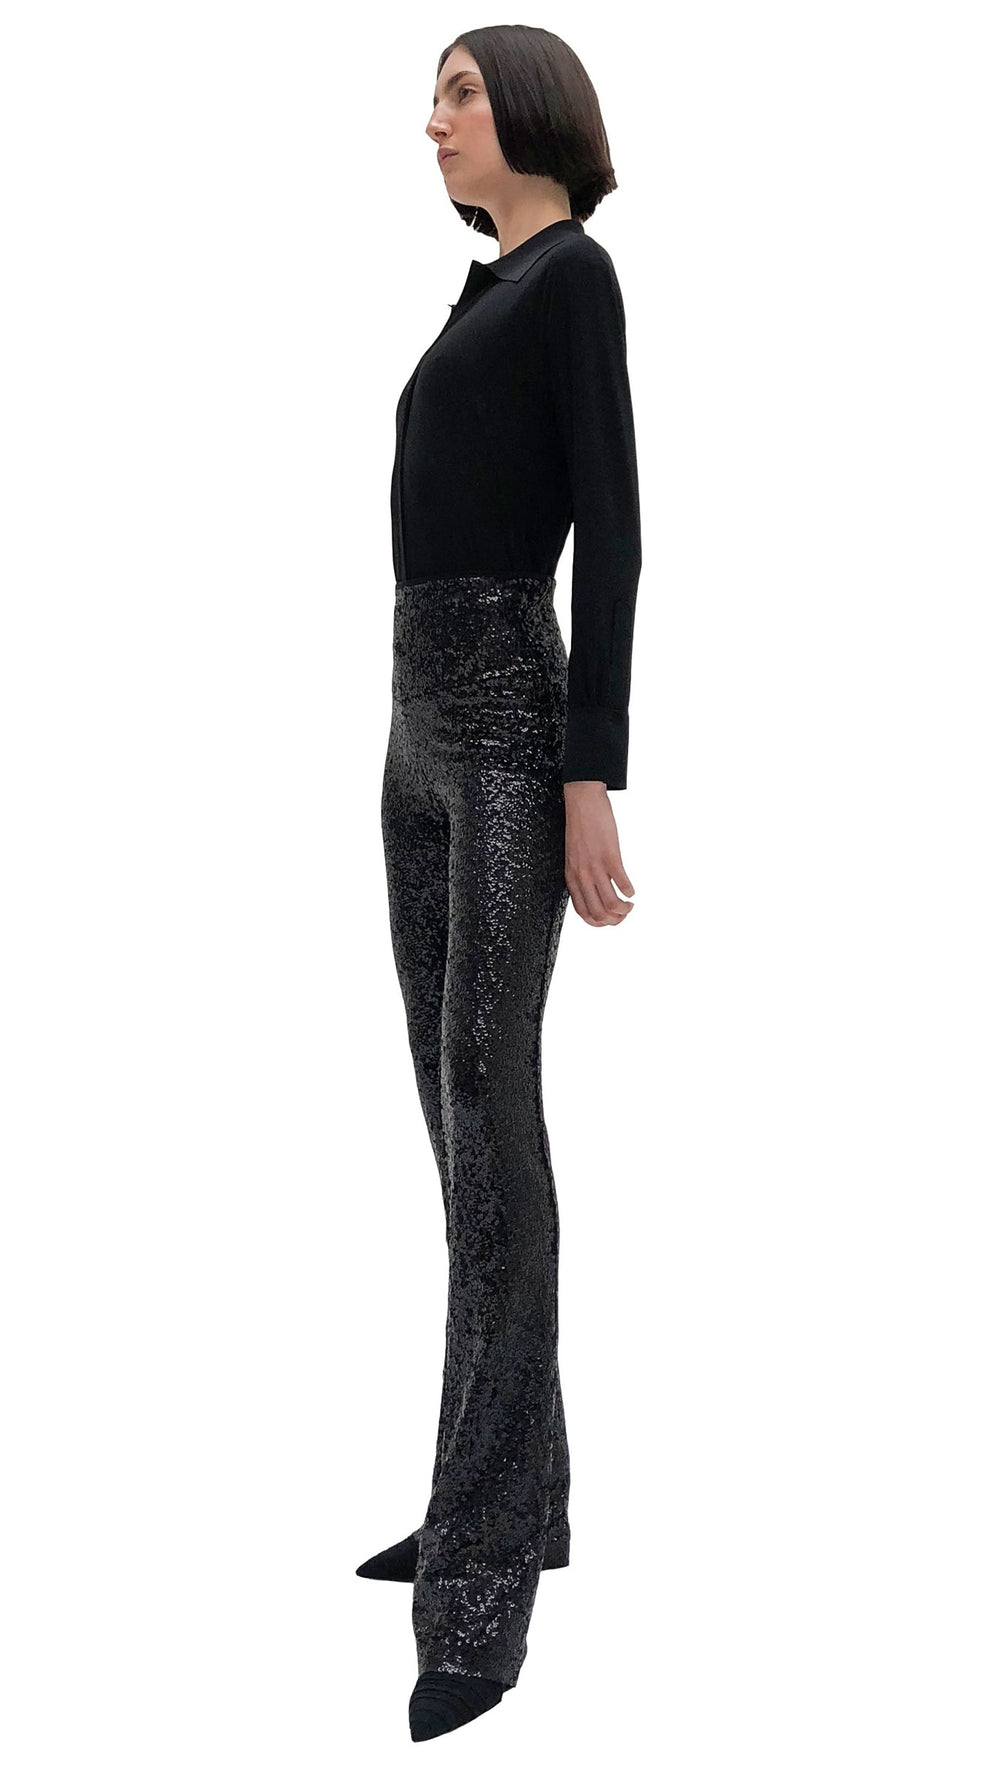 OVERLAPPING SEQUIN BOOT PANT